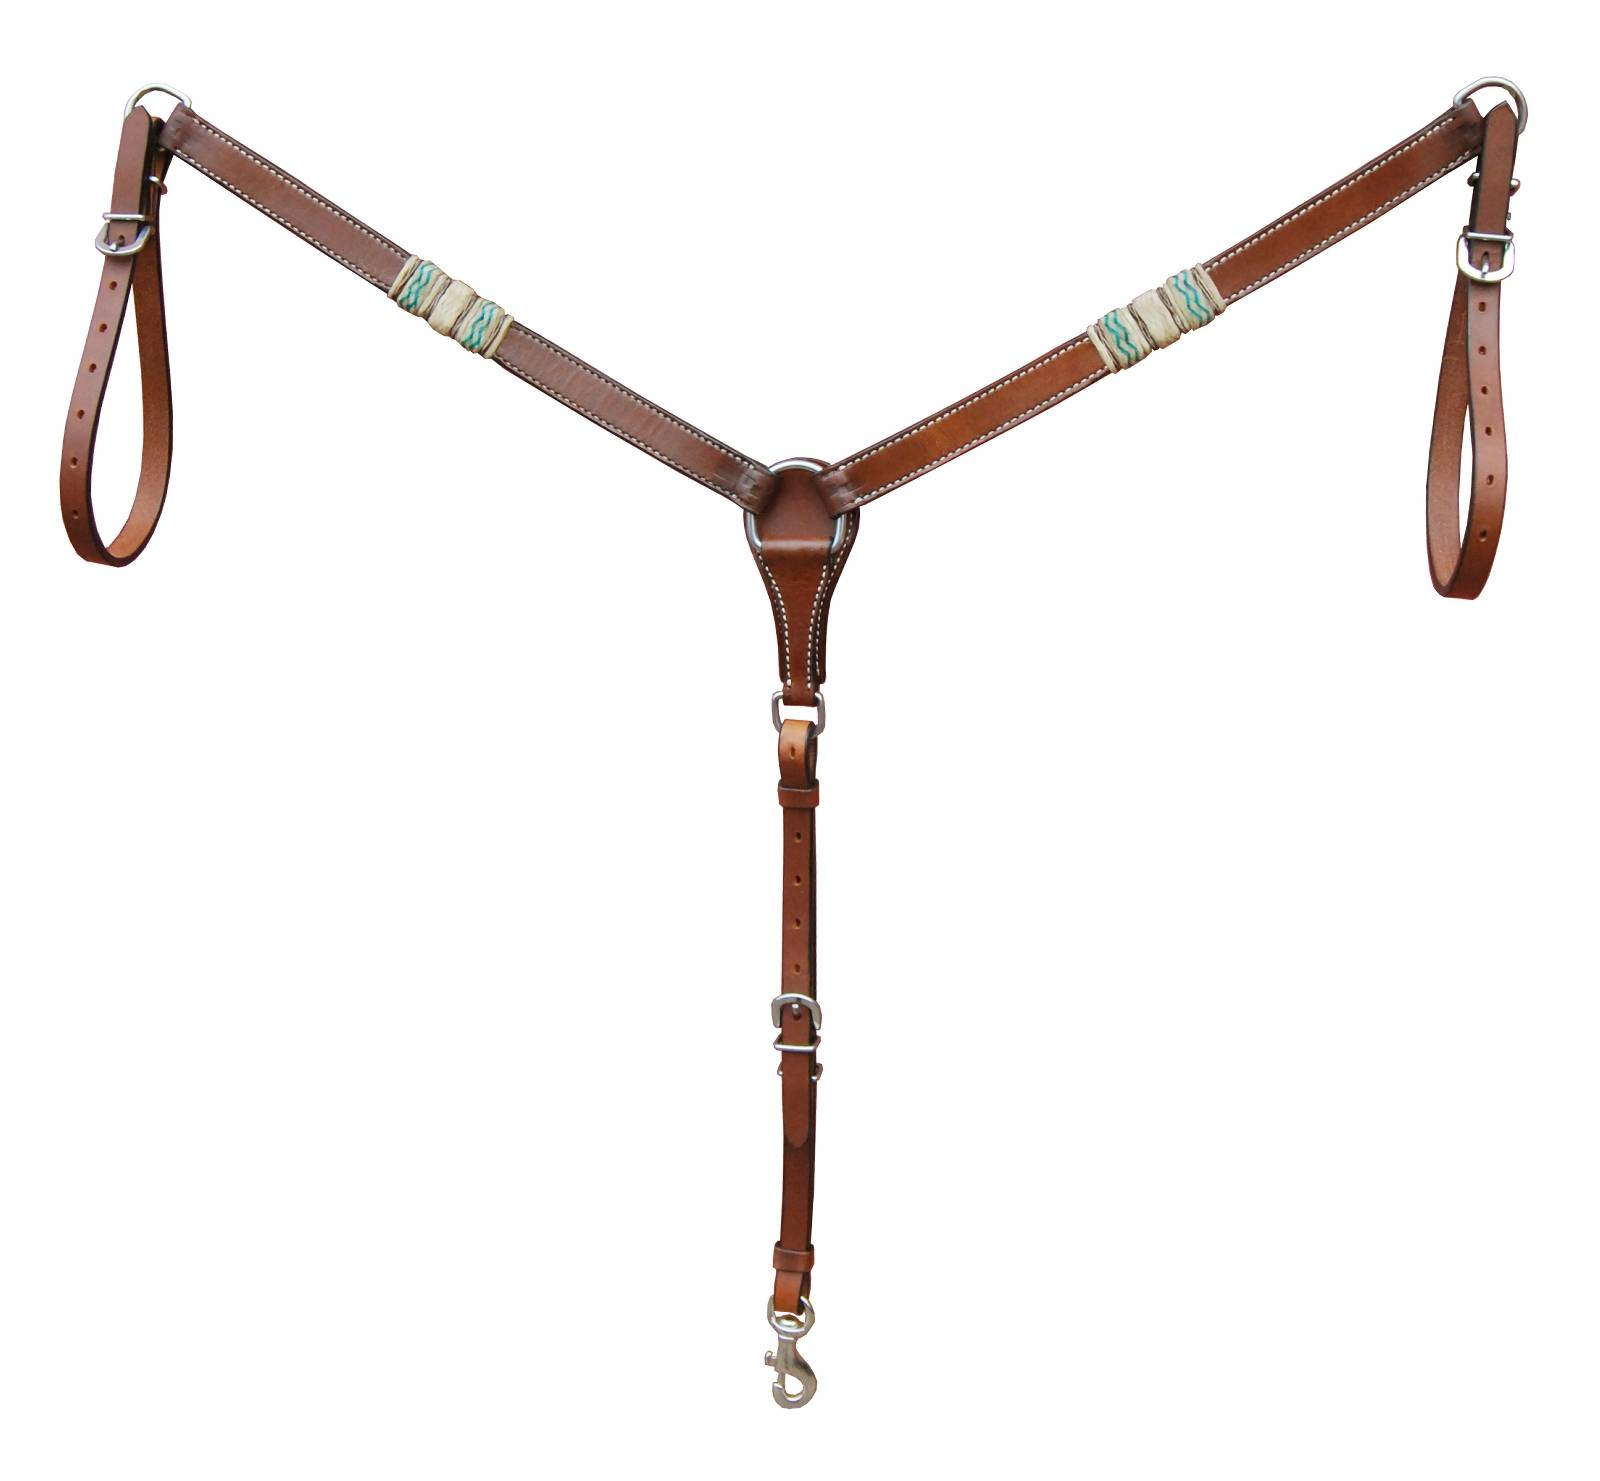 Turn-Two Breast Collar - Laredo